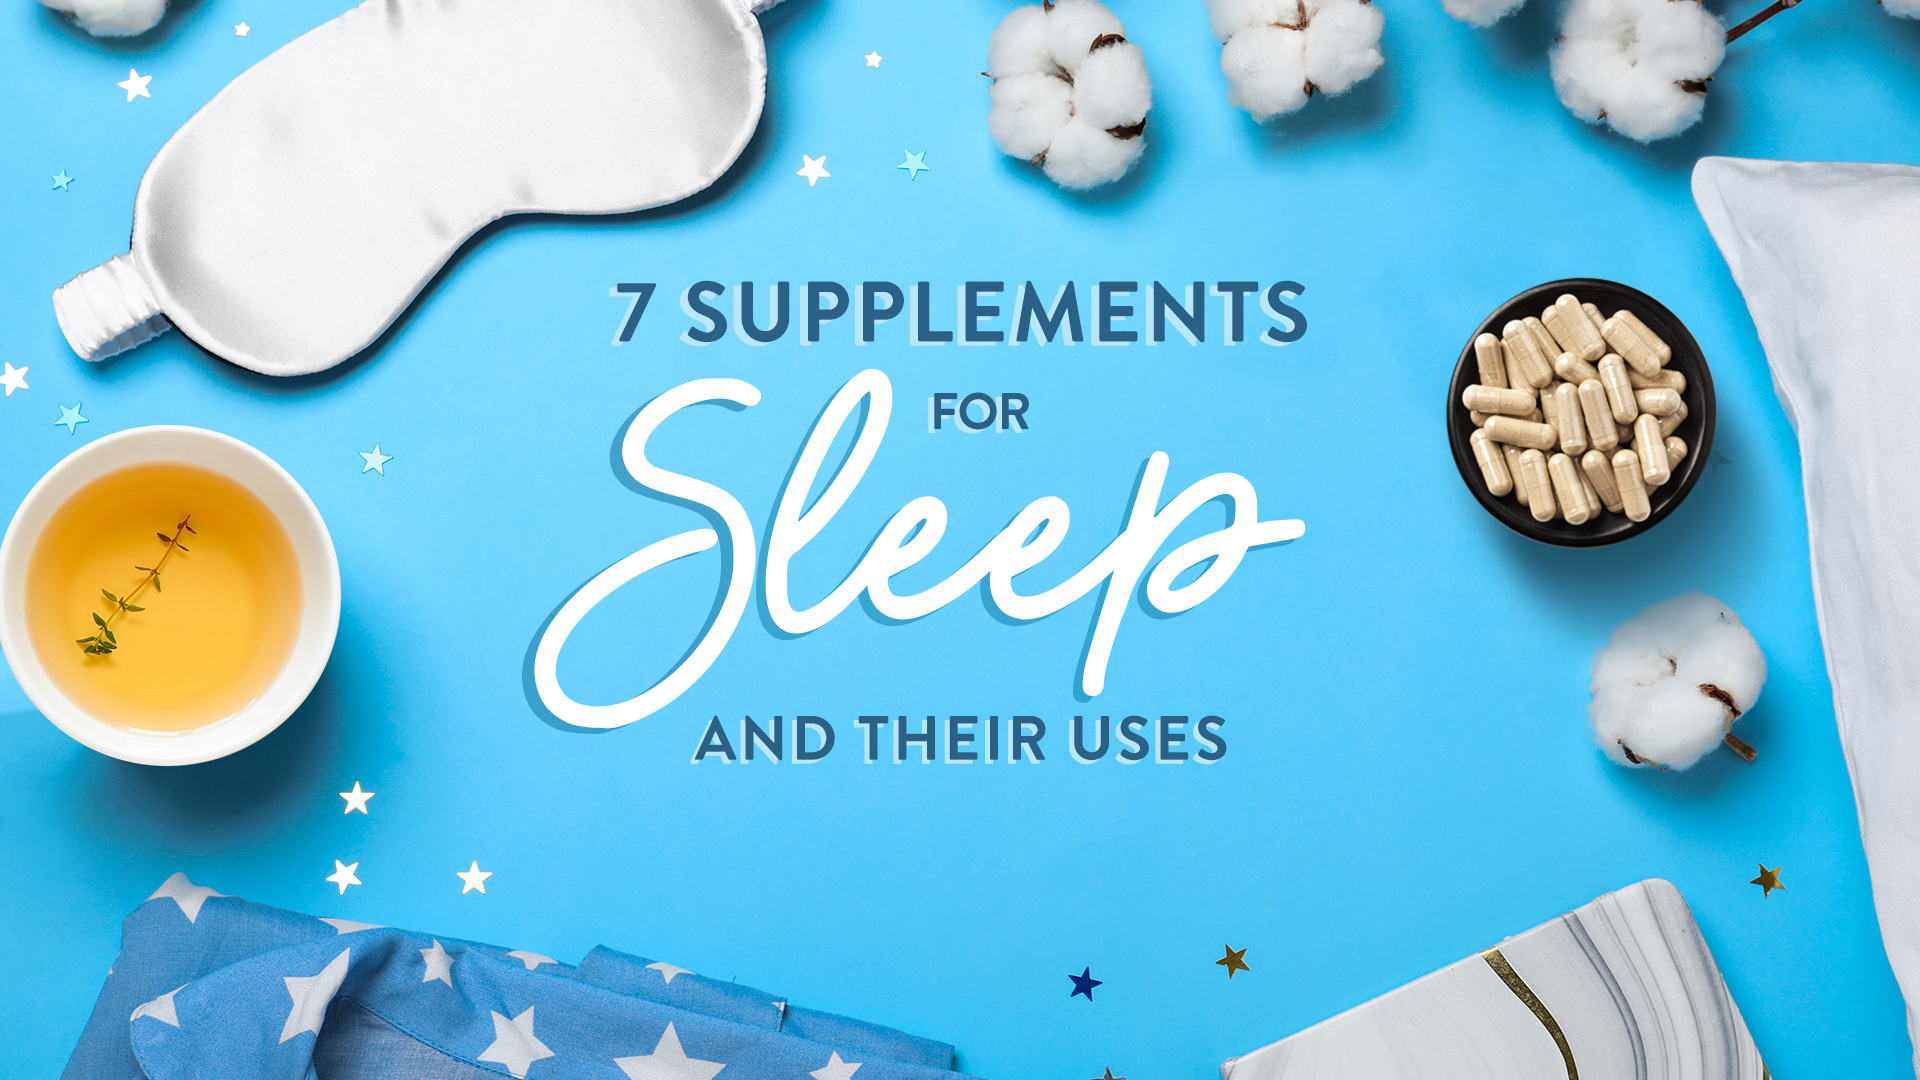 7 Natural Supplements for Sleep and Their Uses